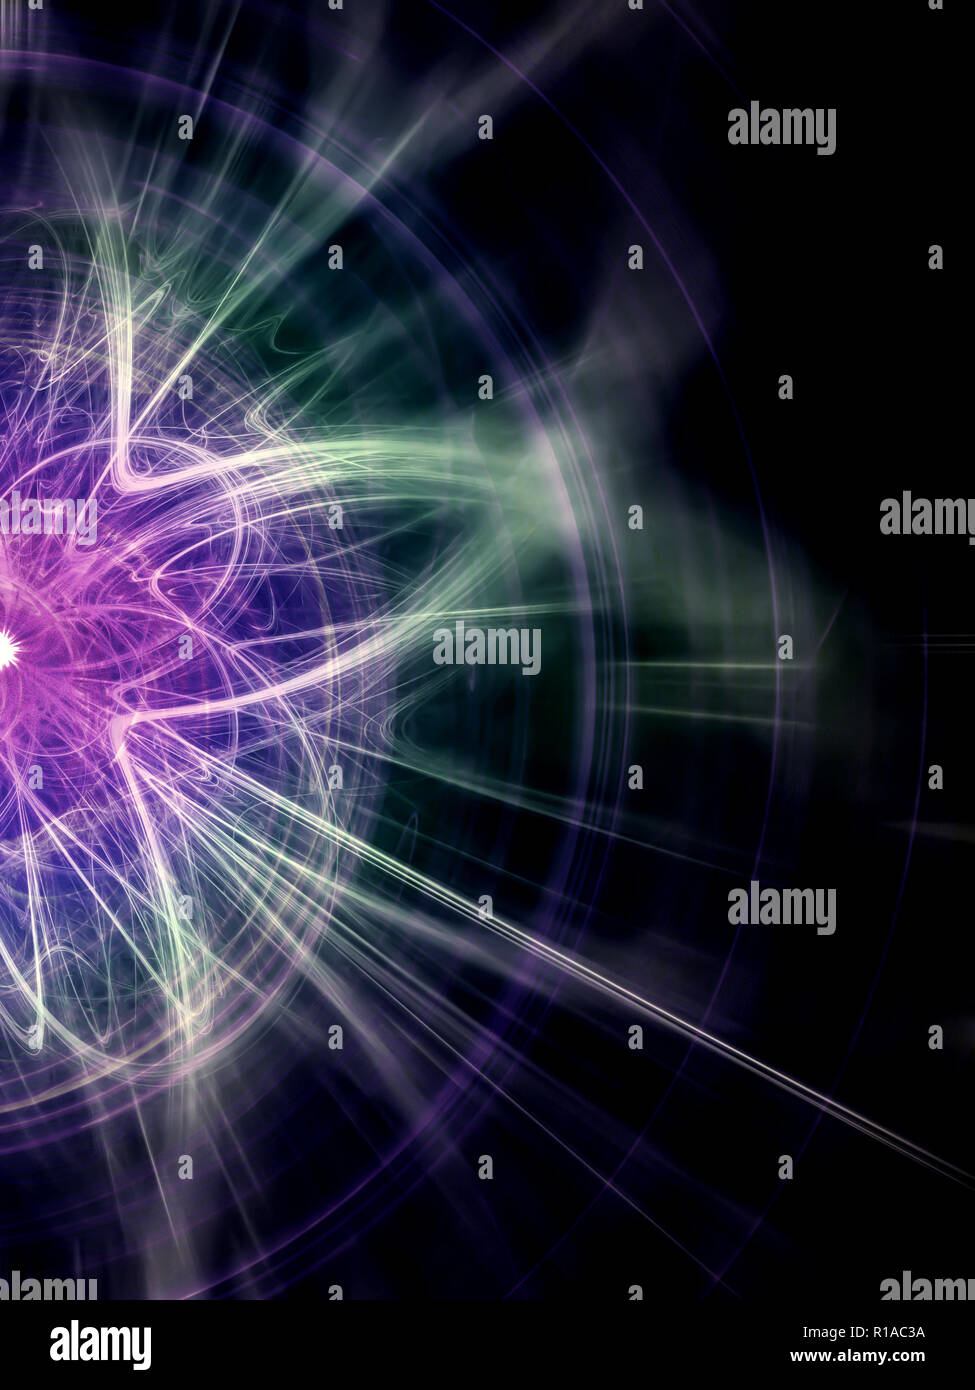 High Energy Particles Collision - Abstract Illustration Stock Photo